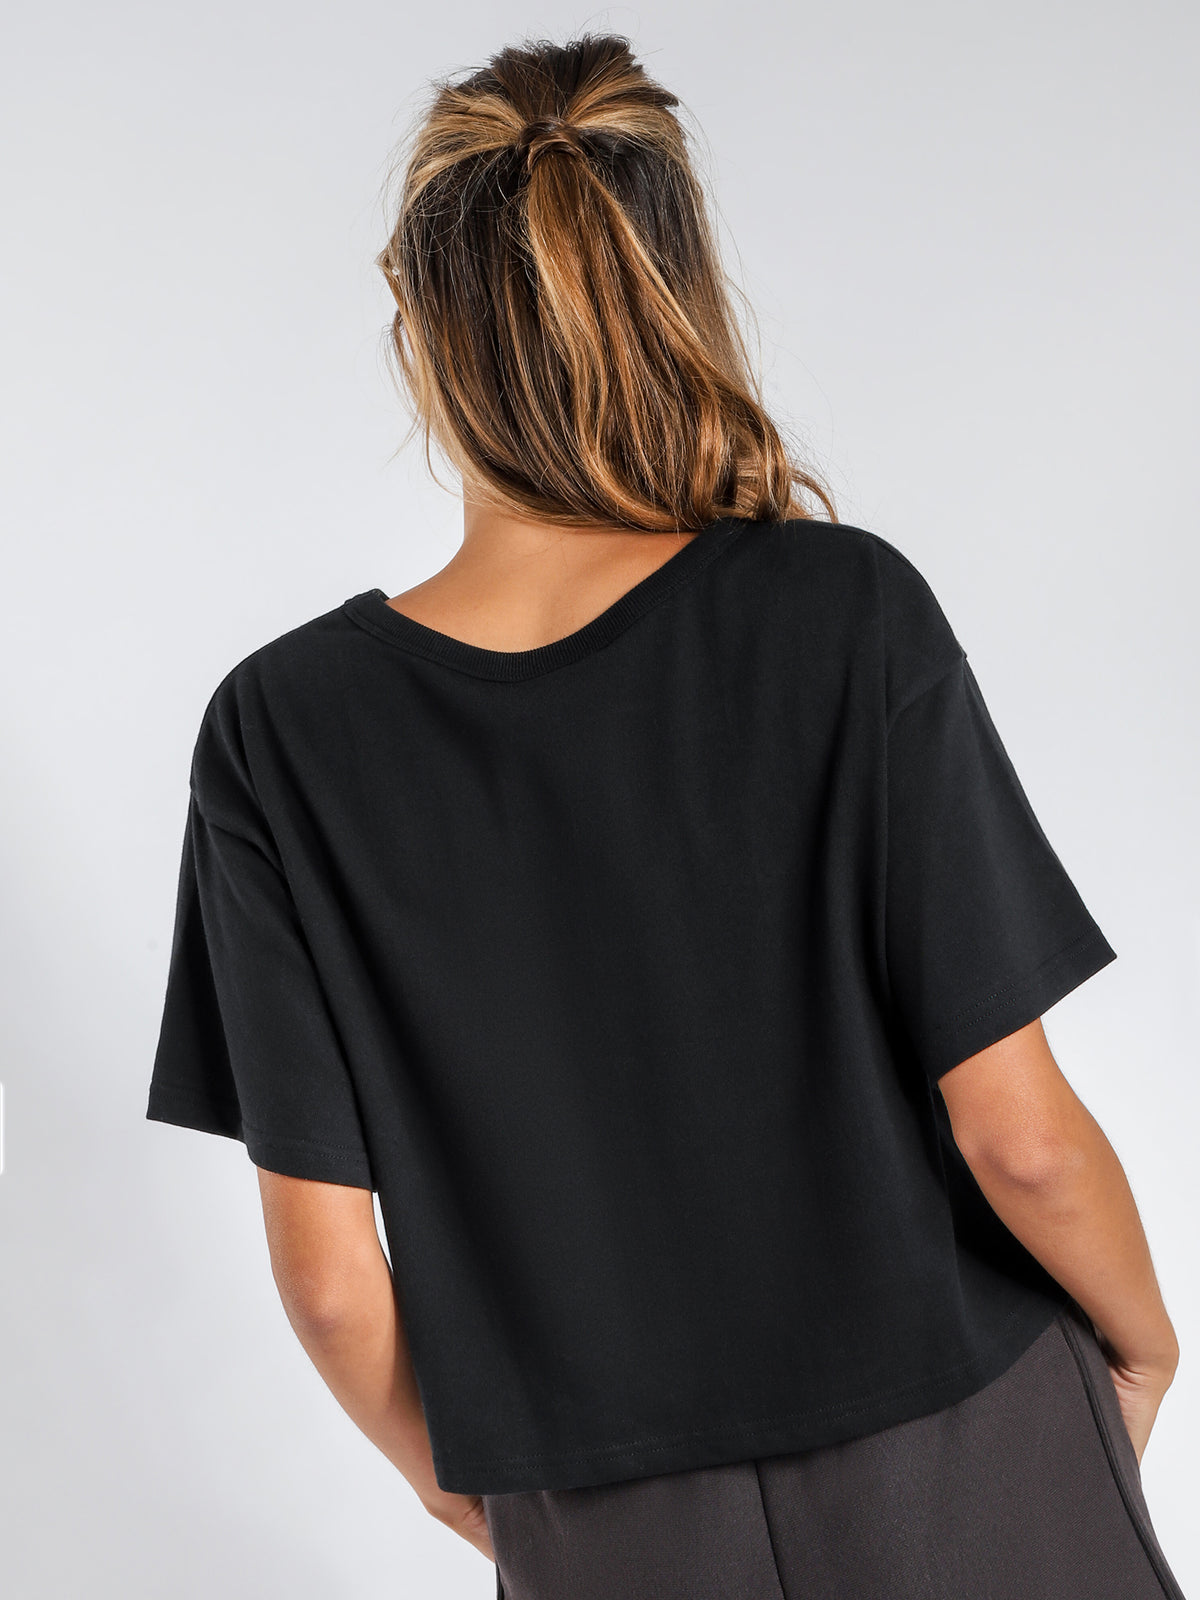 Cropped T-Shirt in Black